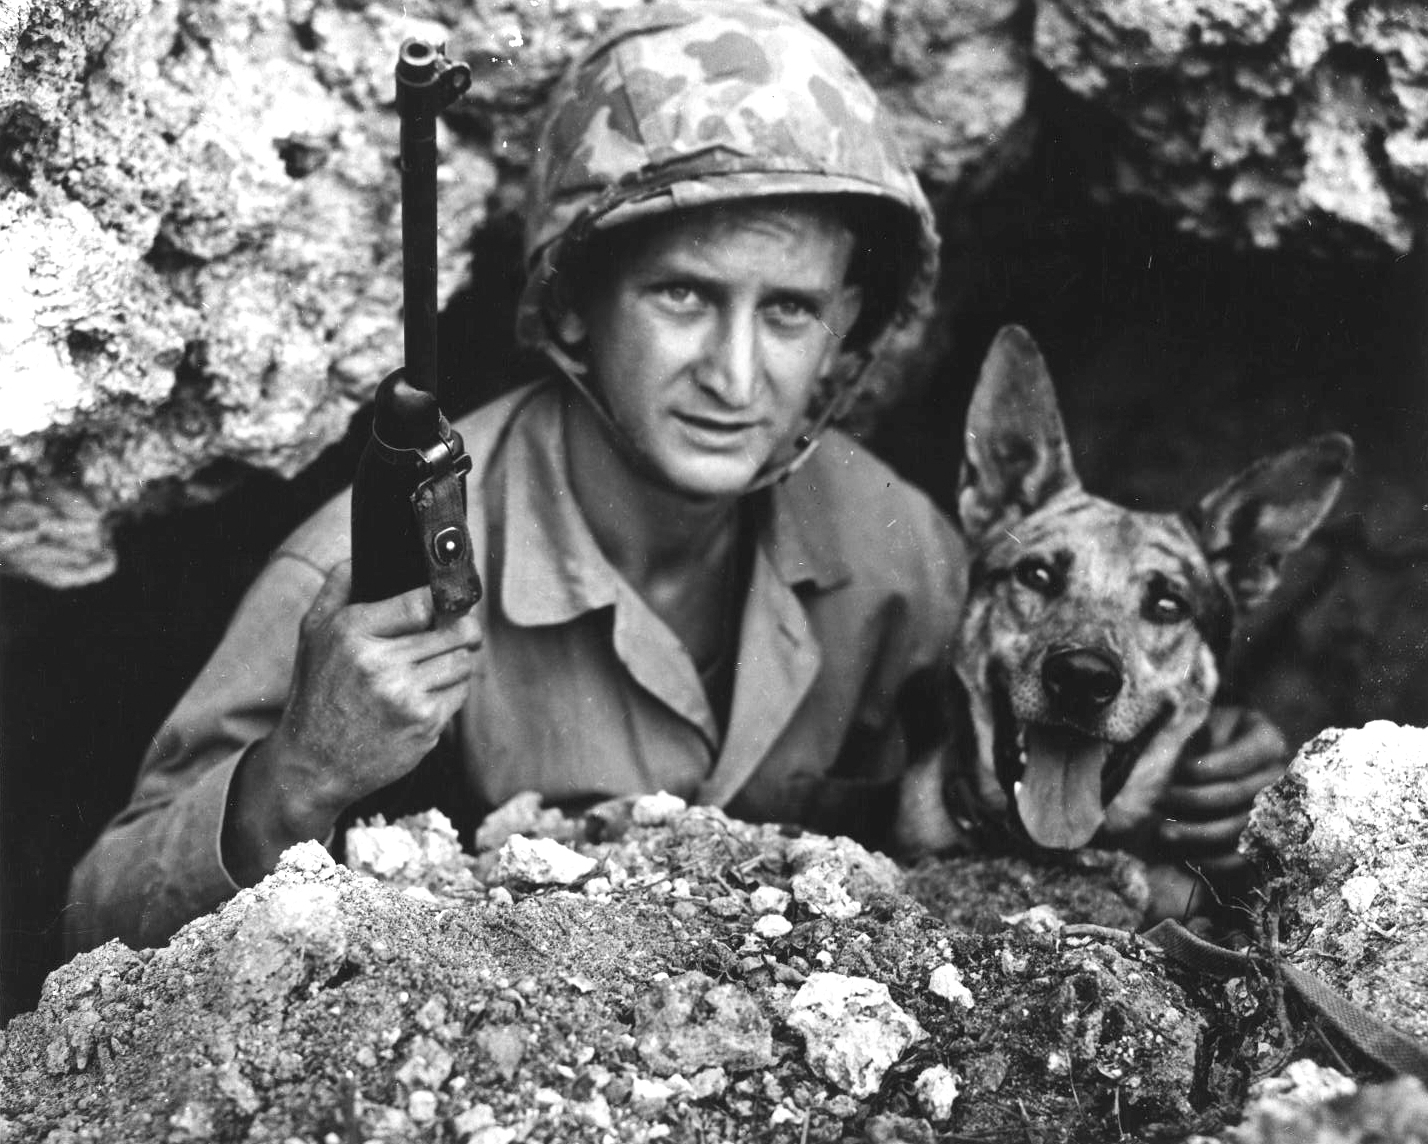 US-Marine-Private-John-Drugan-and-his-war-dog-Okinawa-Japan-May-1945-source-ww2dbase